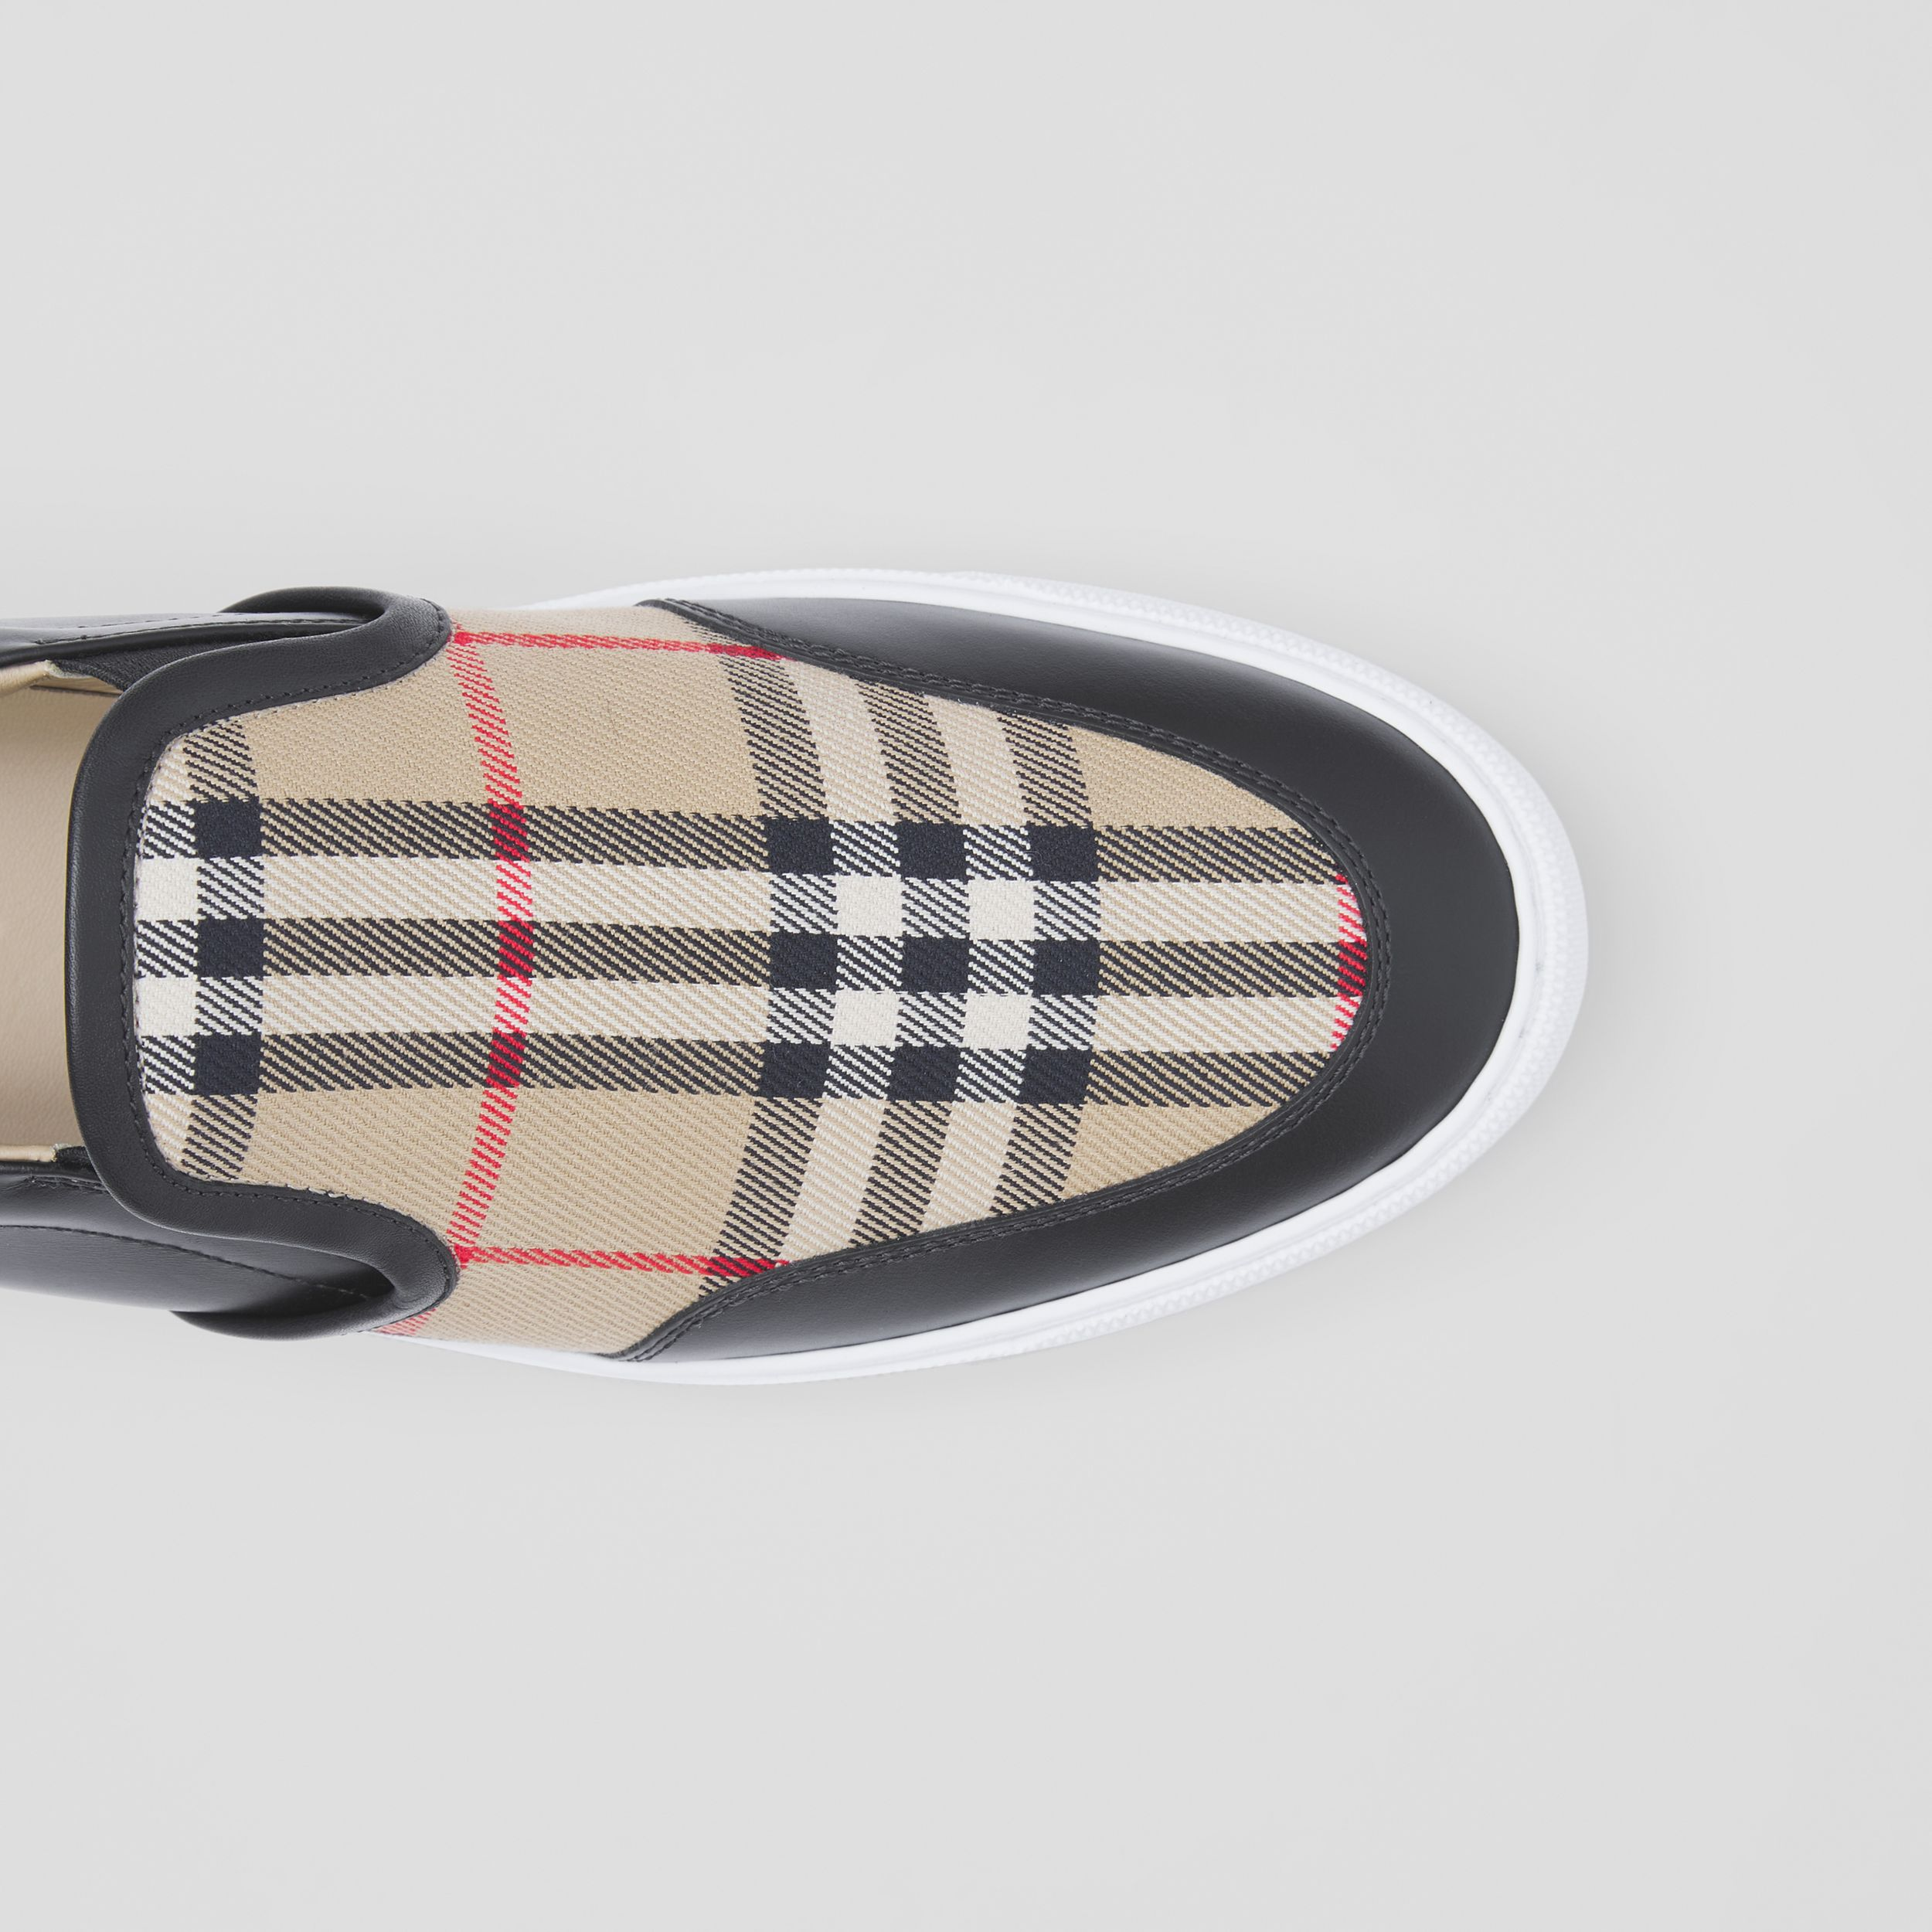 Leather and Vintage Check Slip-on Sneakers in Black - Women | Burberry - 2